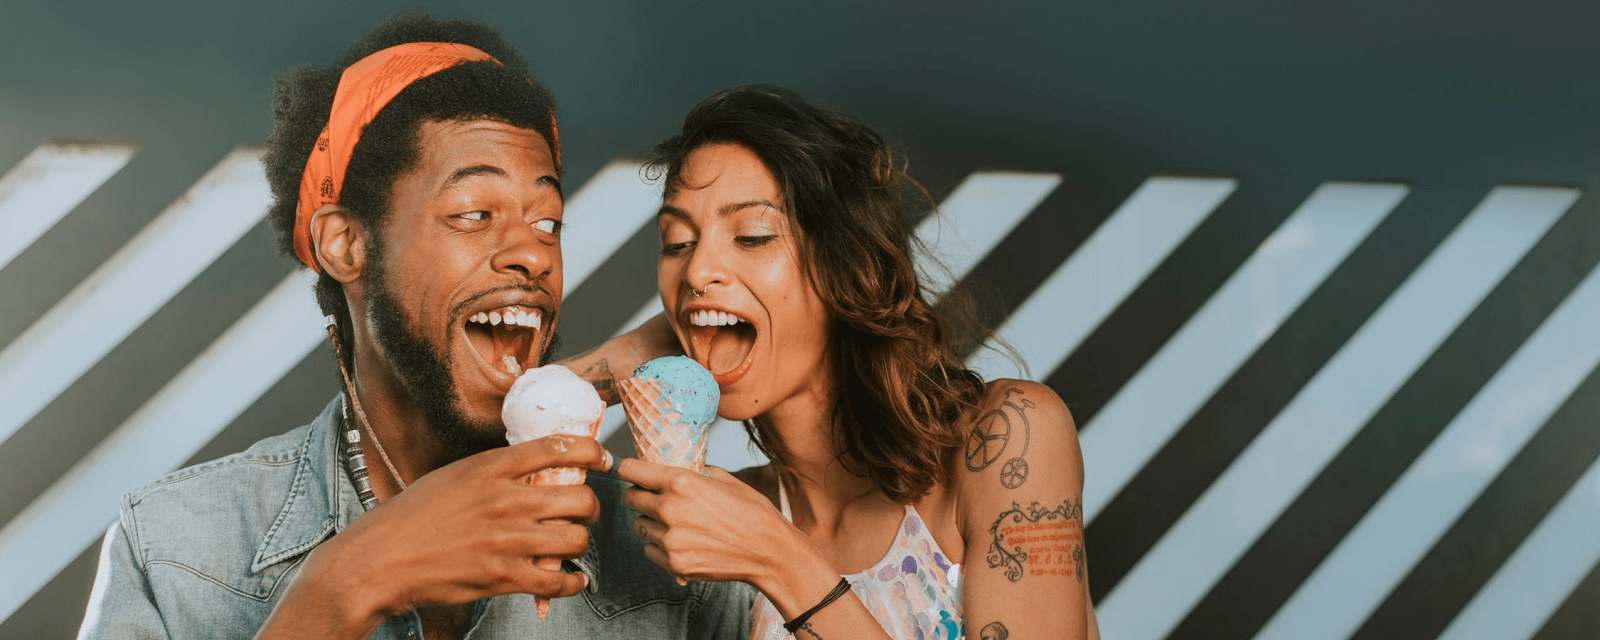 Why do men need dating advice?